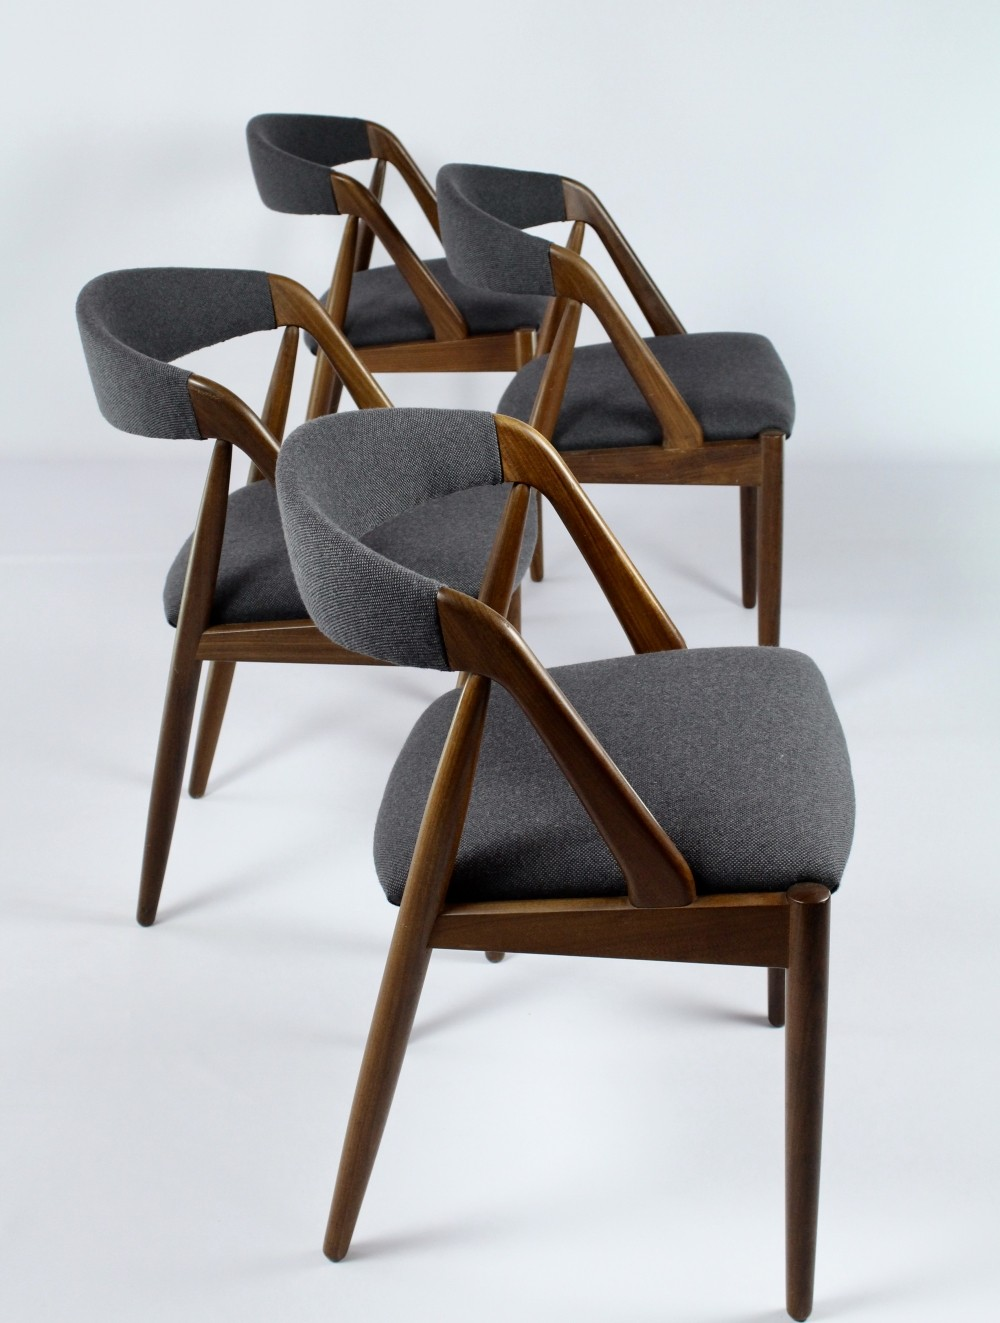 Set of 4 dining chairs by Kai Kristiansen for Andersen Schou